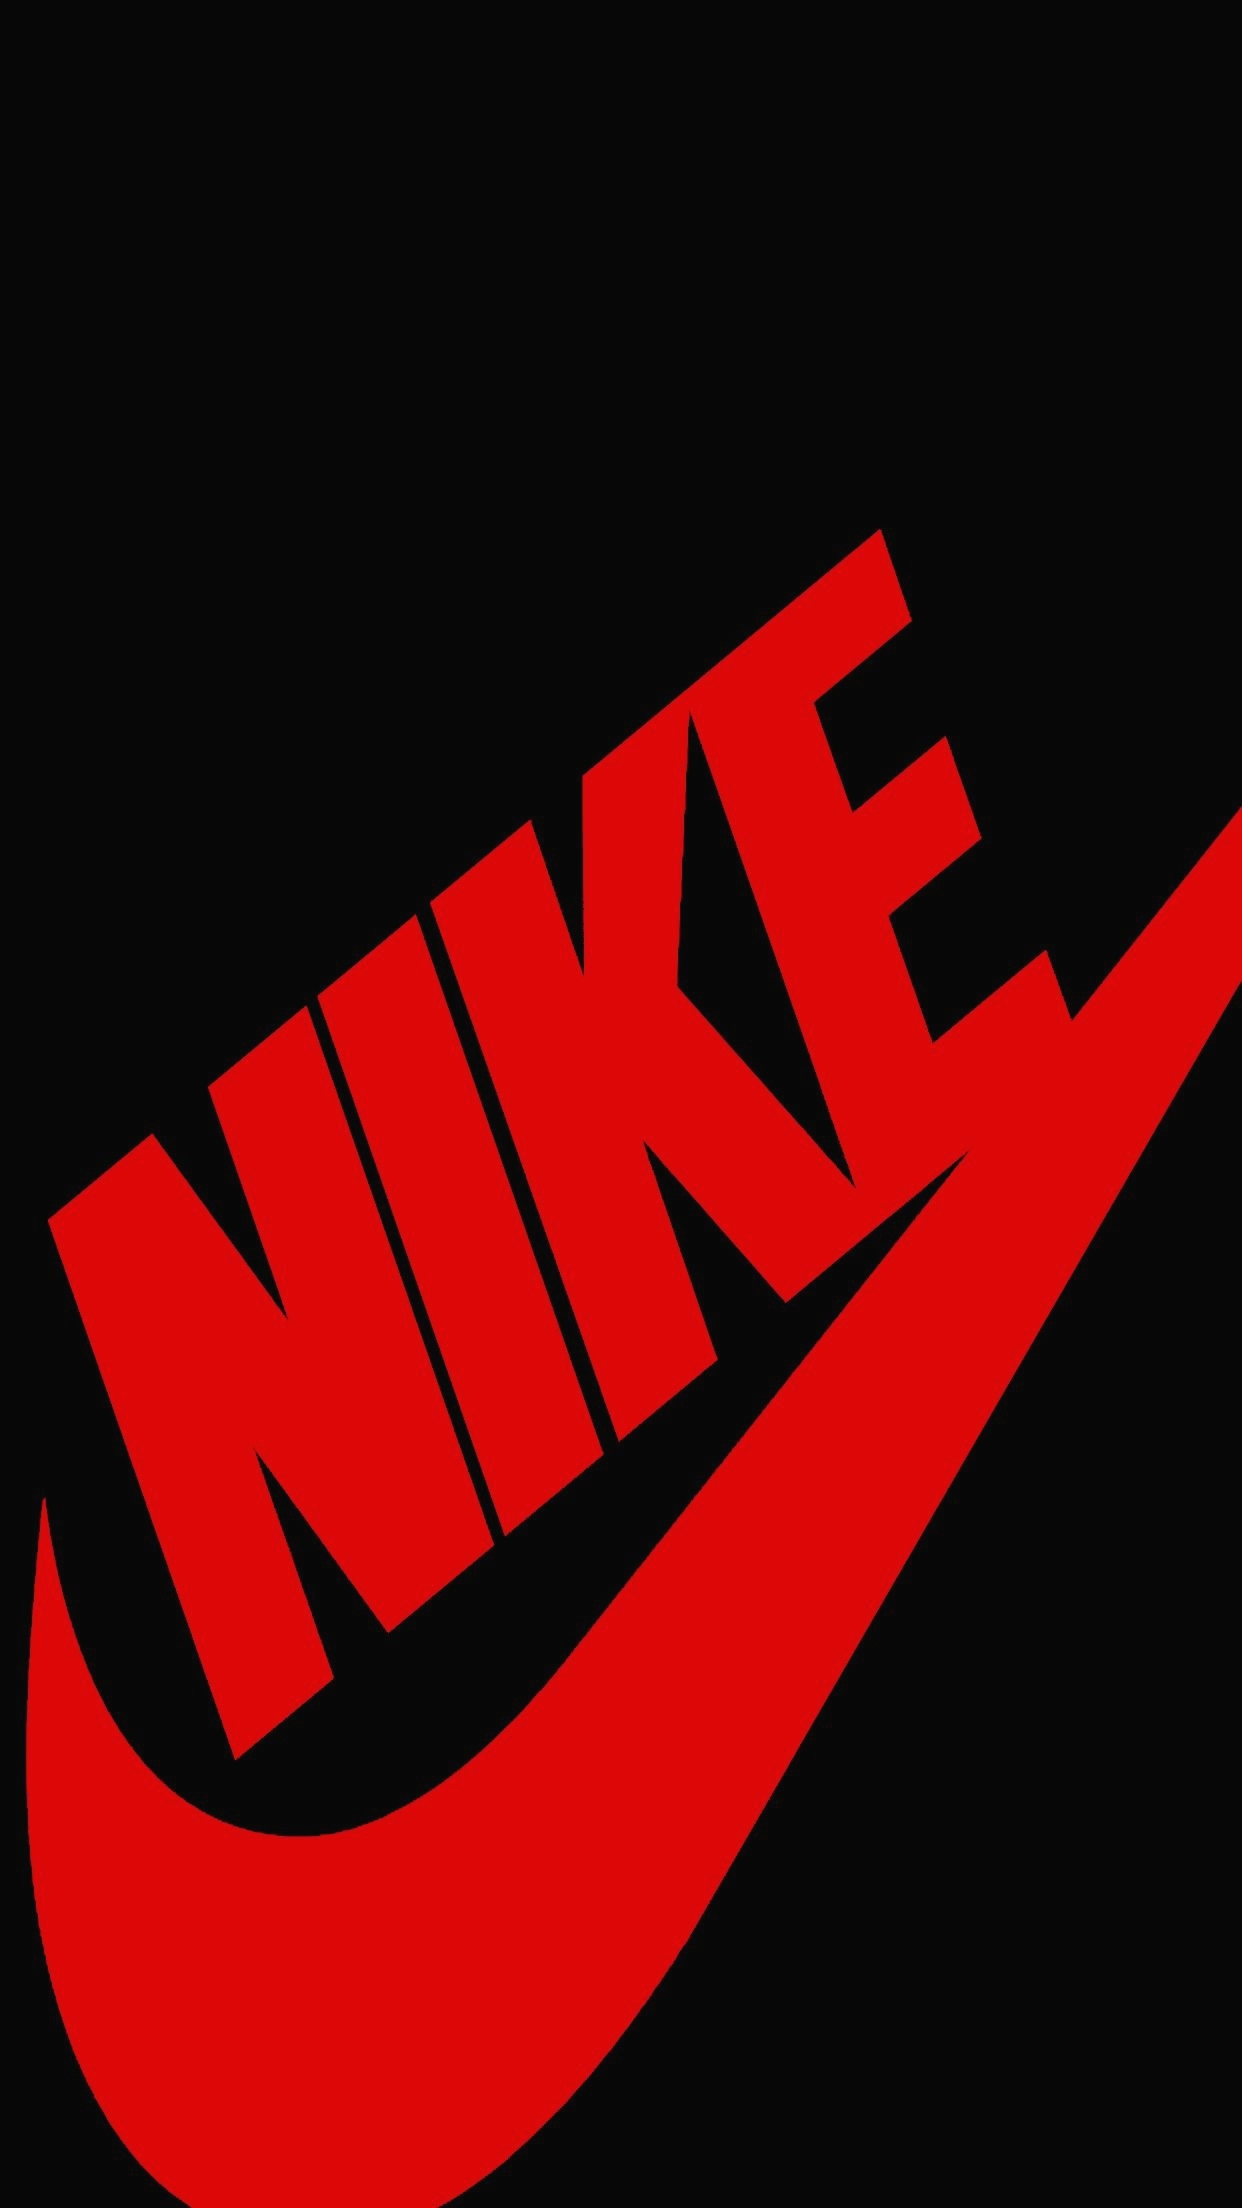 Nike Wallpaper Iphone Logo Wallpaper Hd Tumblr Wallpaper.